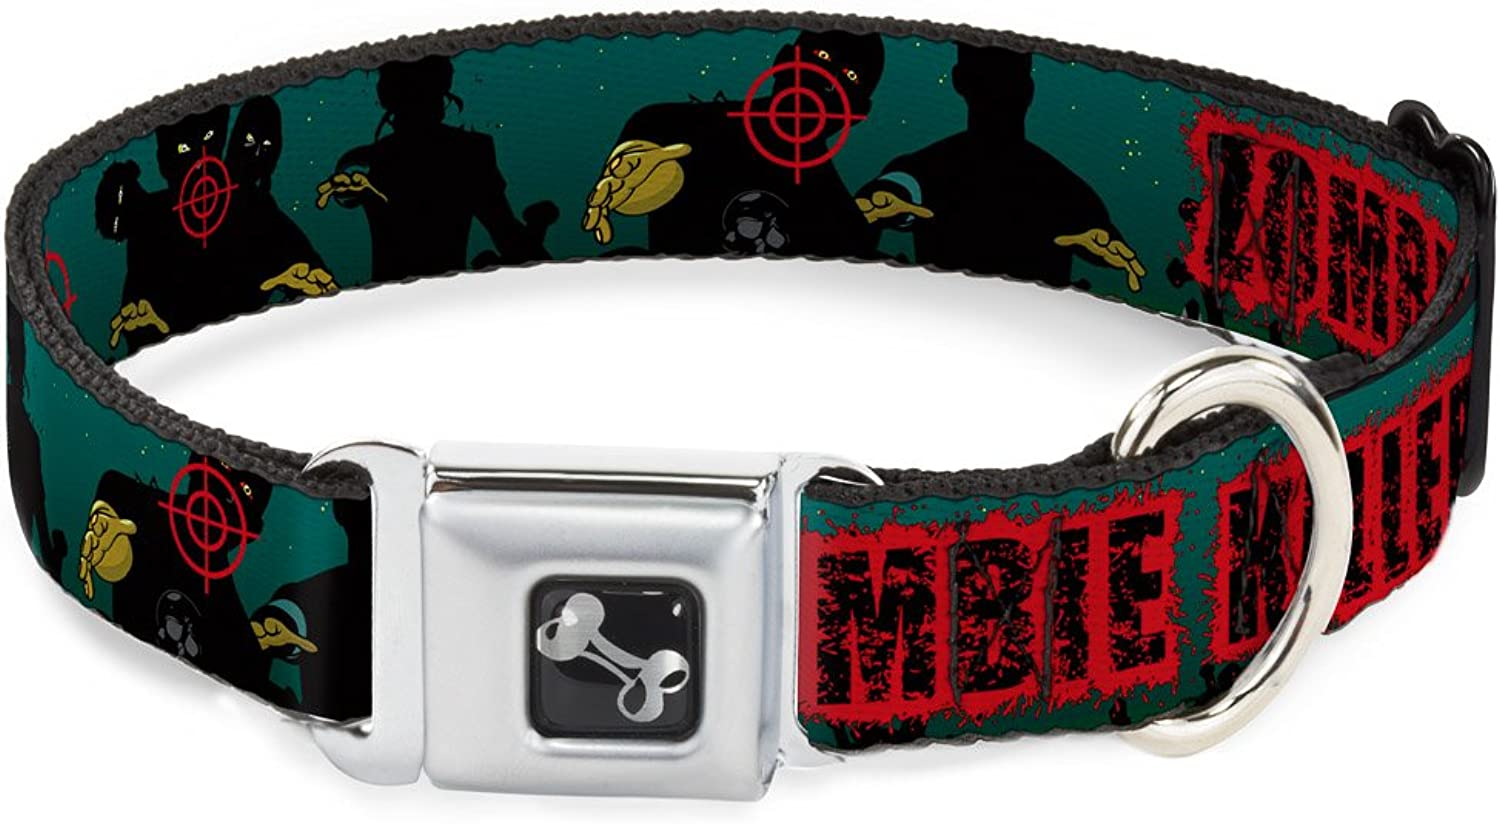 BuckleDown DCW32630L Dog Collar Plastic Clip Buckle, Zombie Killer March Green Red Black, 1 x 1526